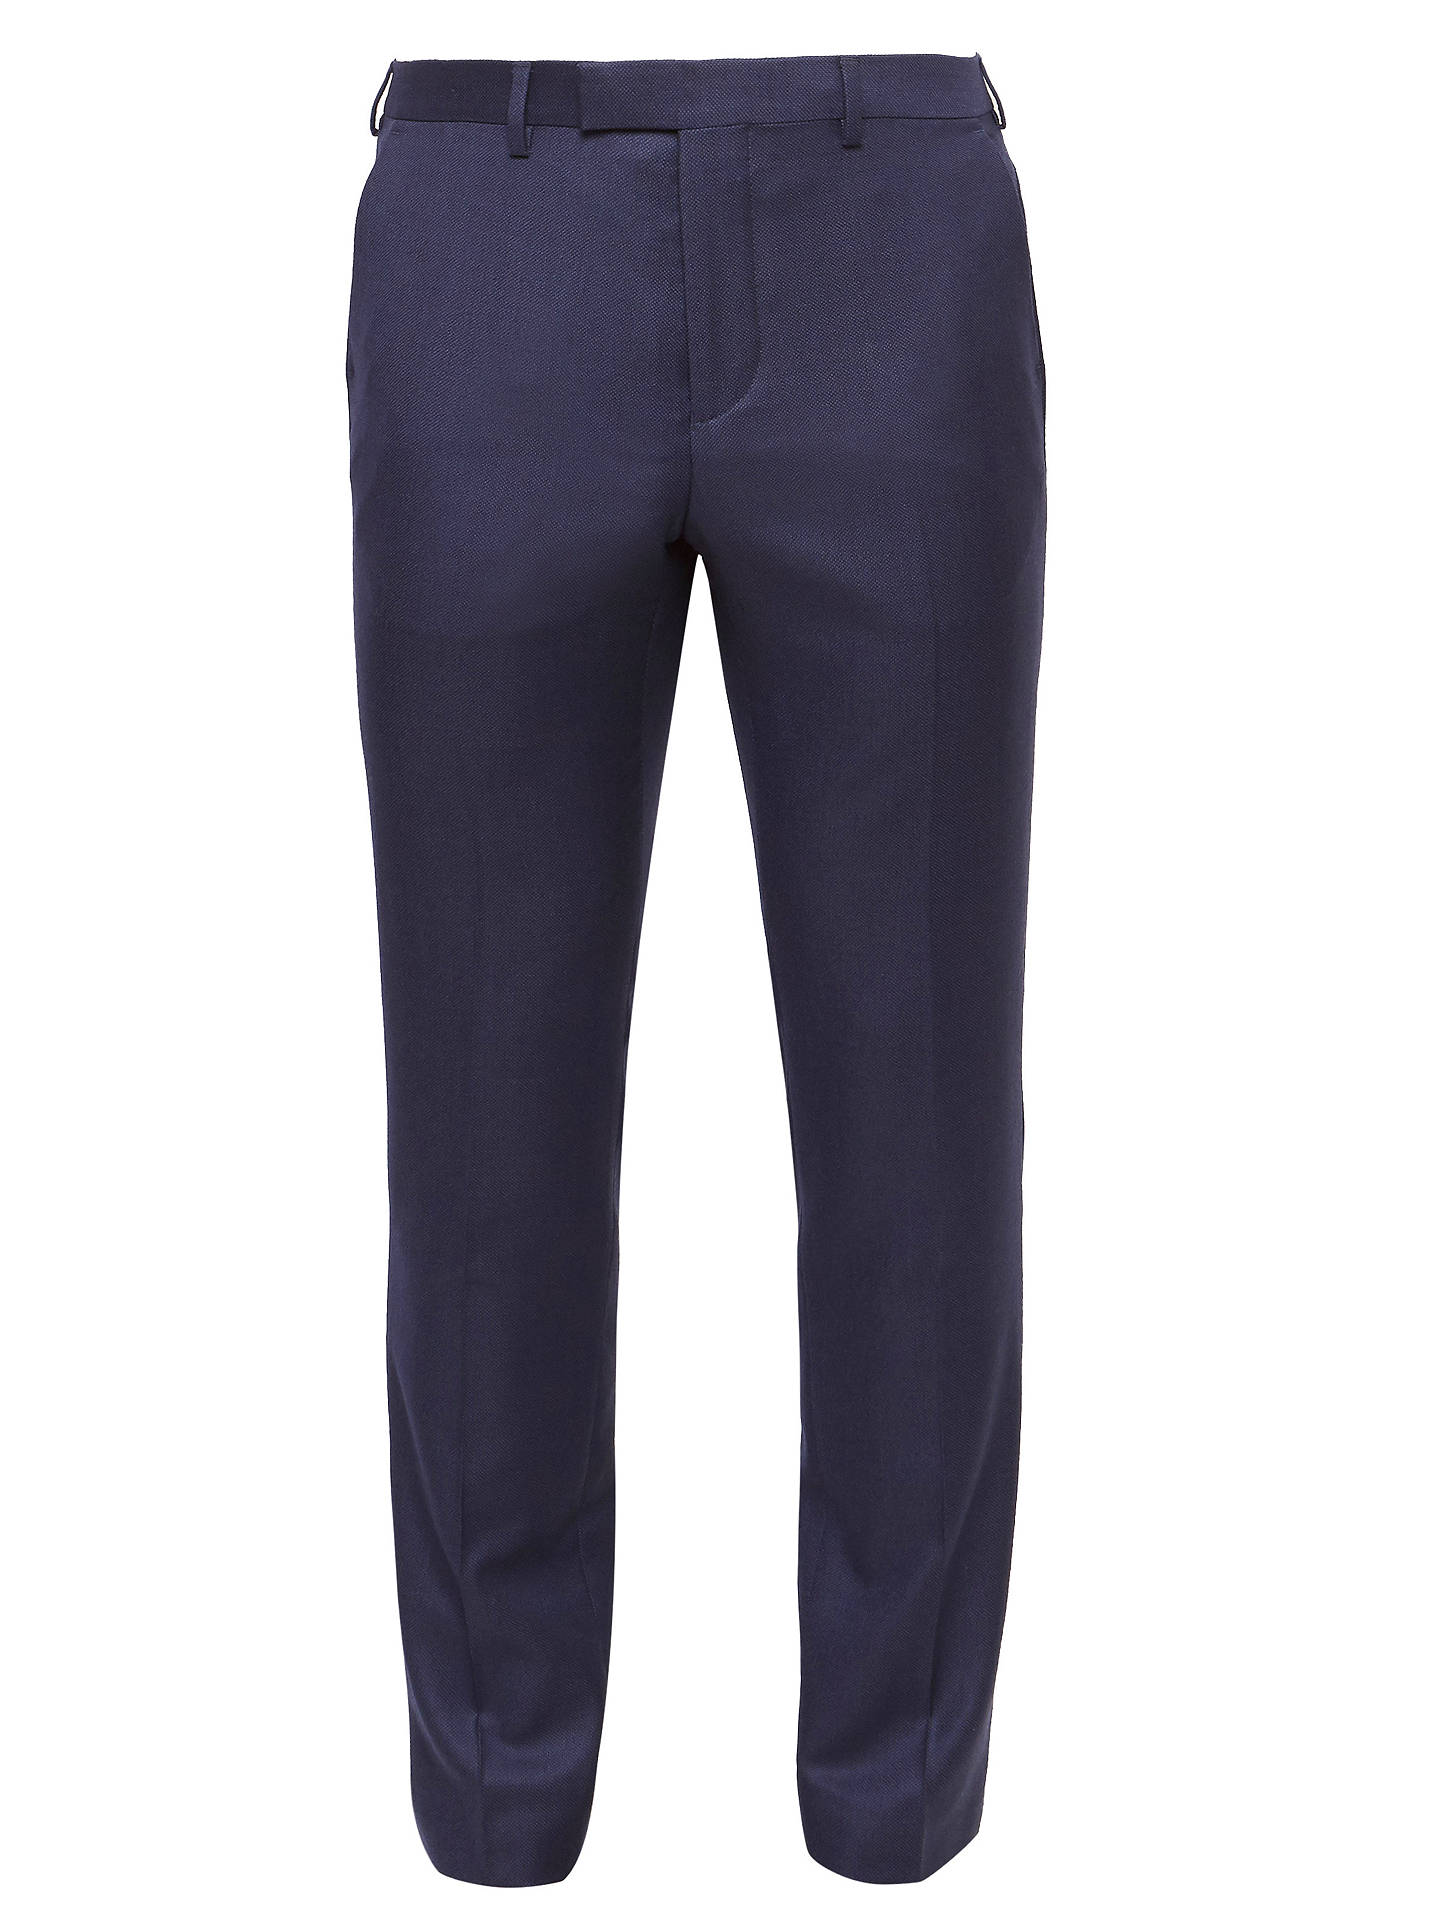 BuyTed Baker Chalkyt Wool Birdseye Tailored Suit Trousers, Dark Blue, 32S Online at johnlewis.com